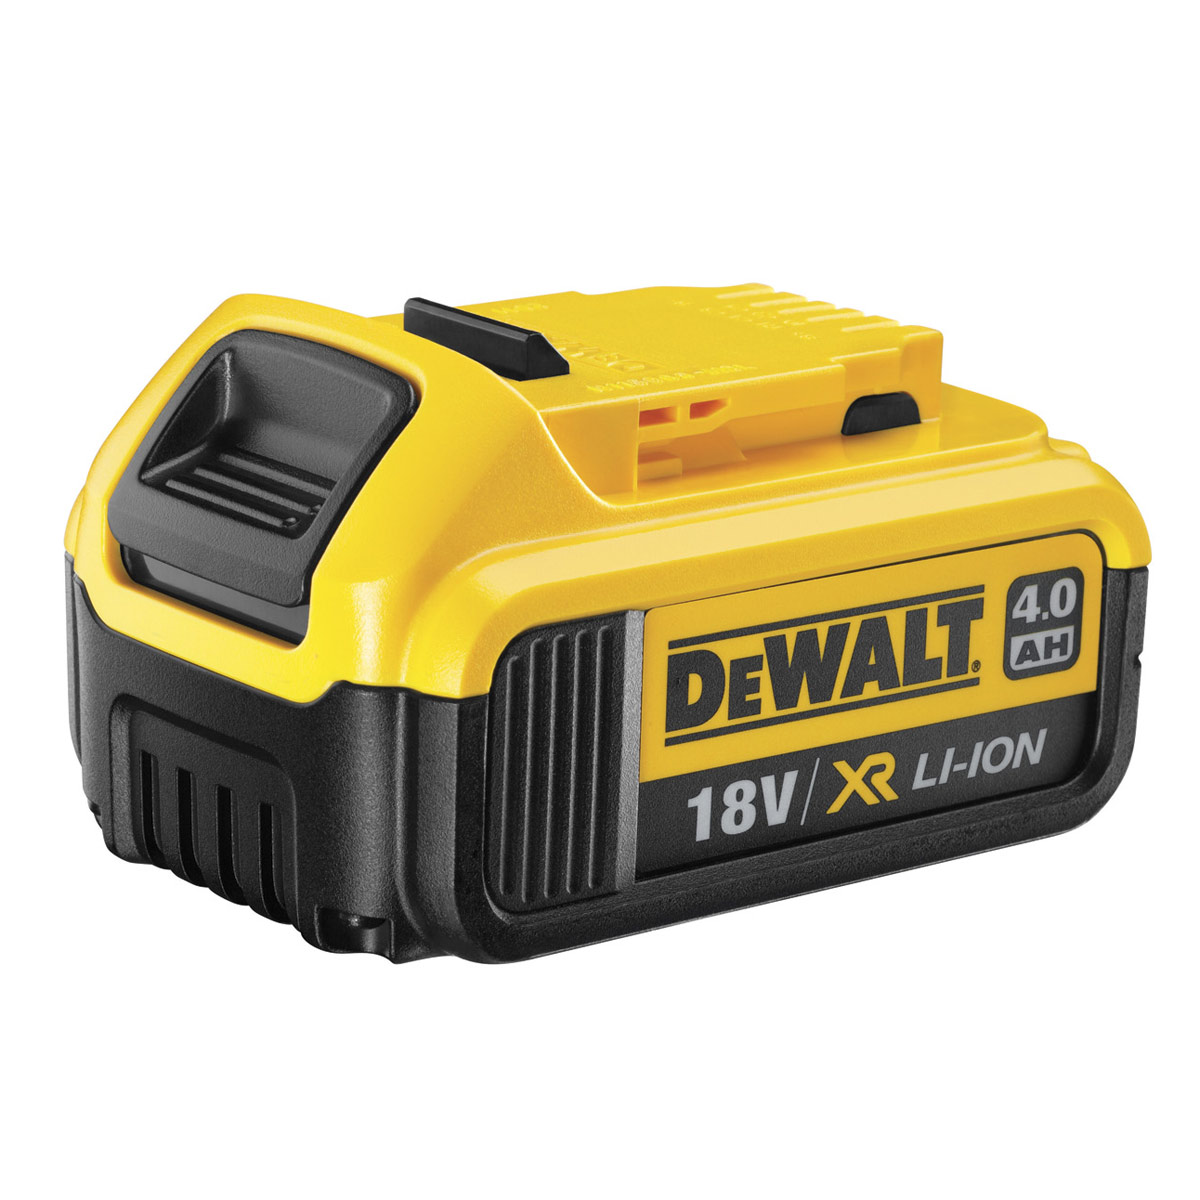 dewalt dcb182 18v xr li ion battery 4ah product. Black Bedroom Furniture Sets. Home Design Ideas